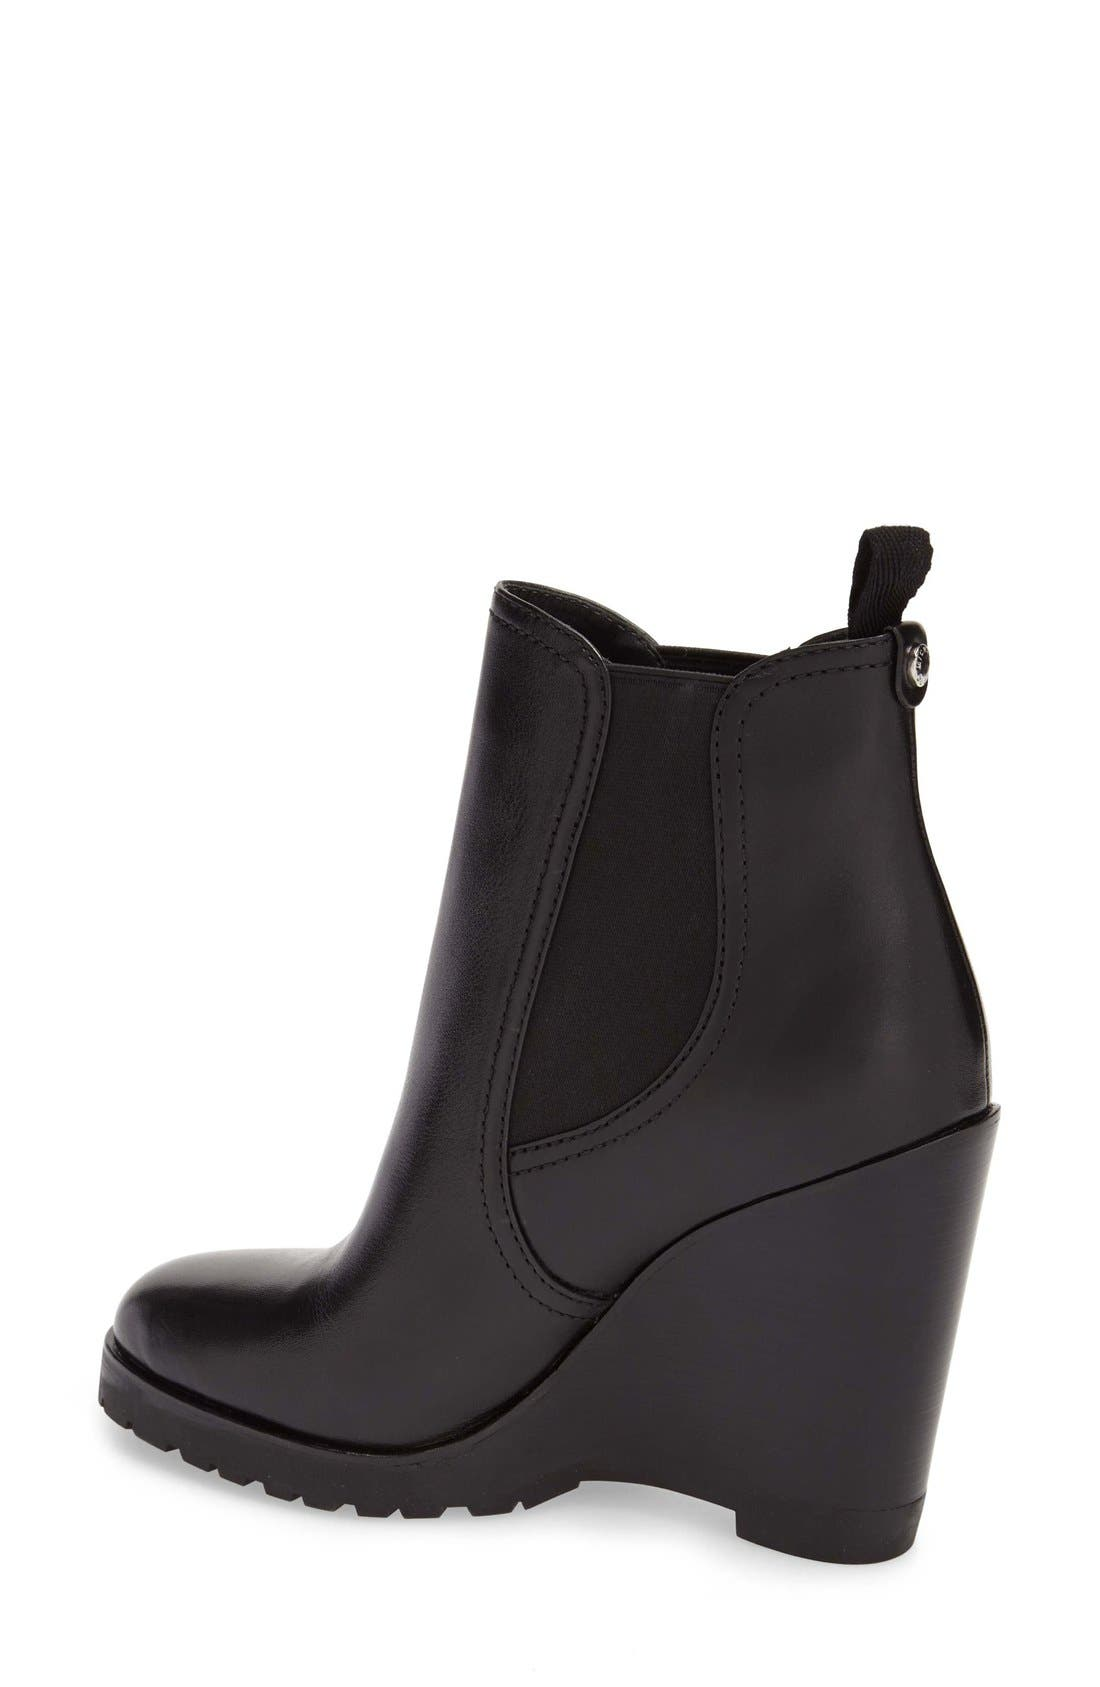 Alternate Image 2  - MICHAEL Michael Kors 'Thea' Wedge Bootie (Women)